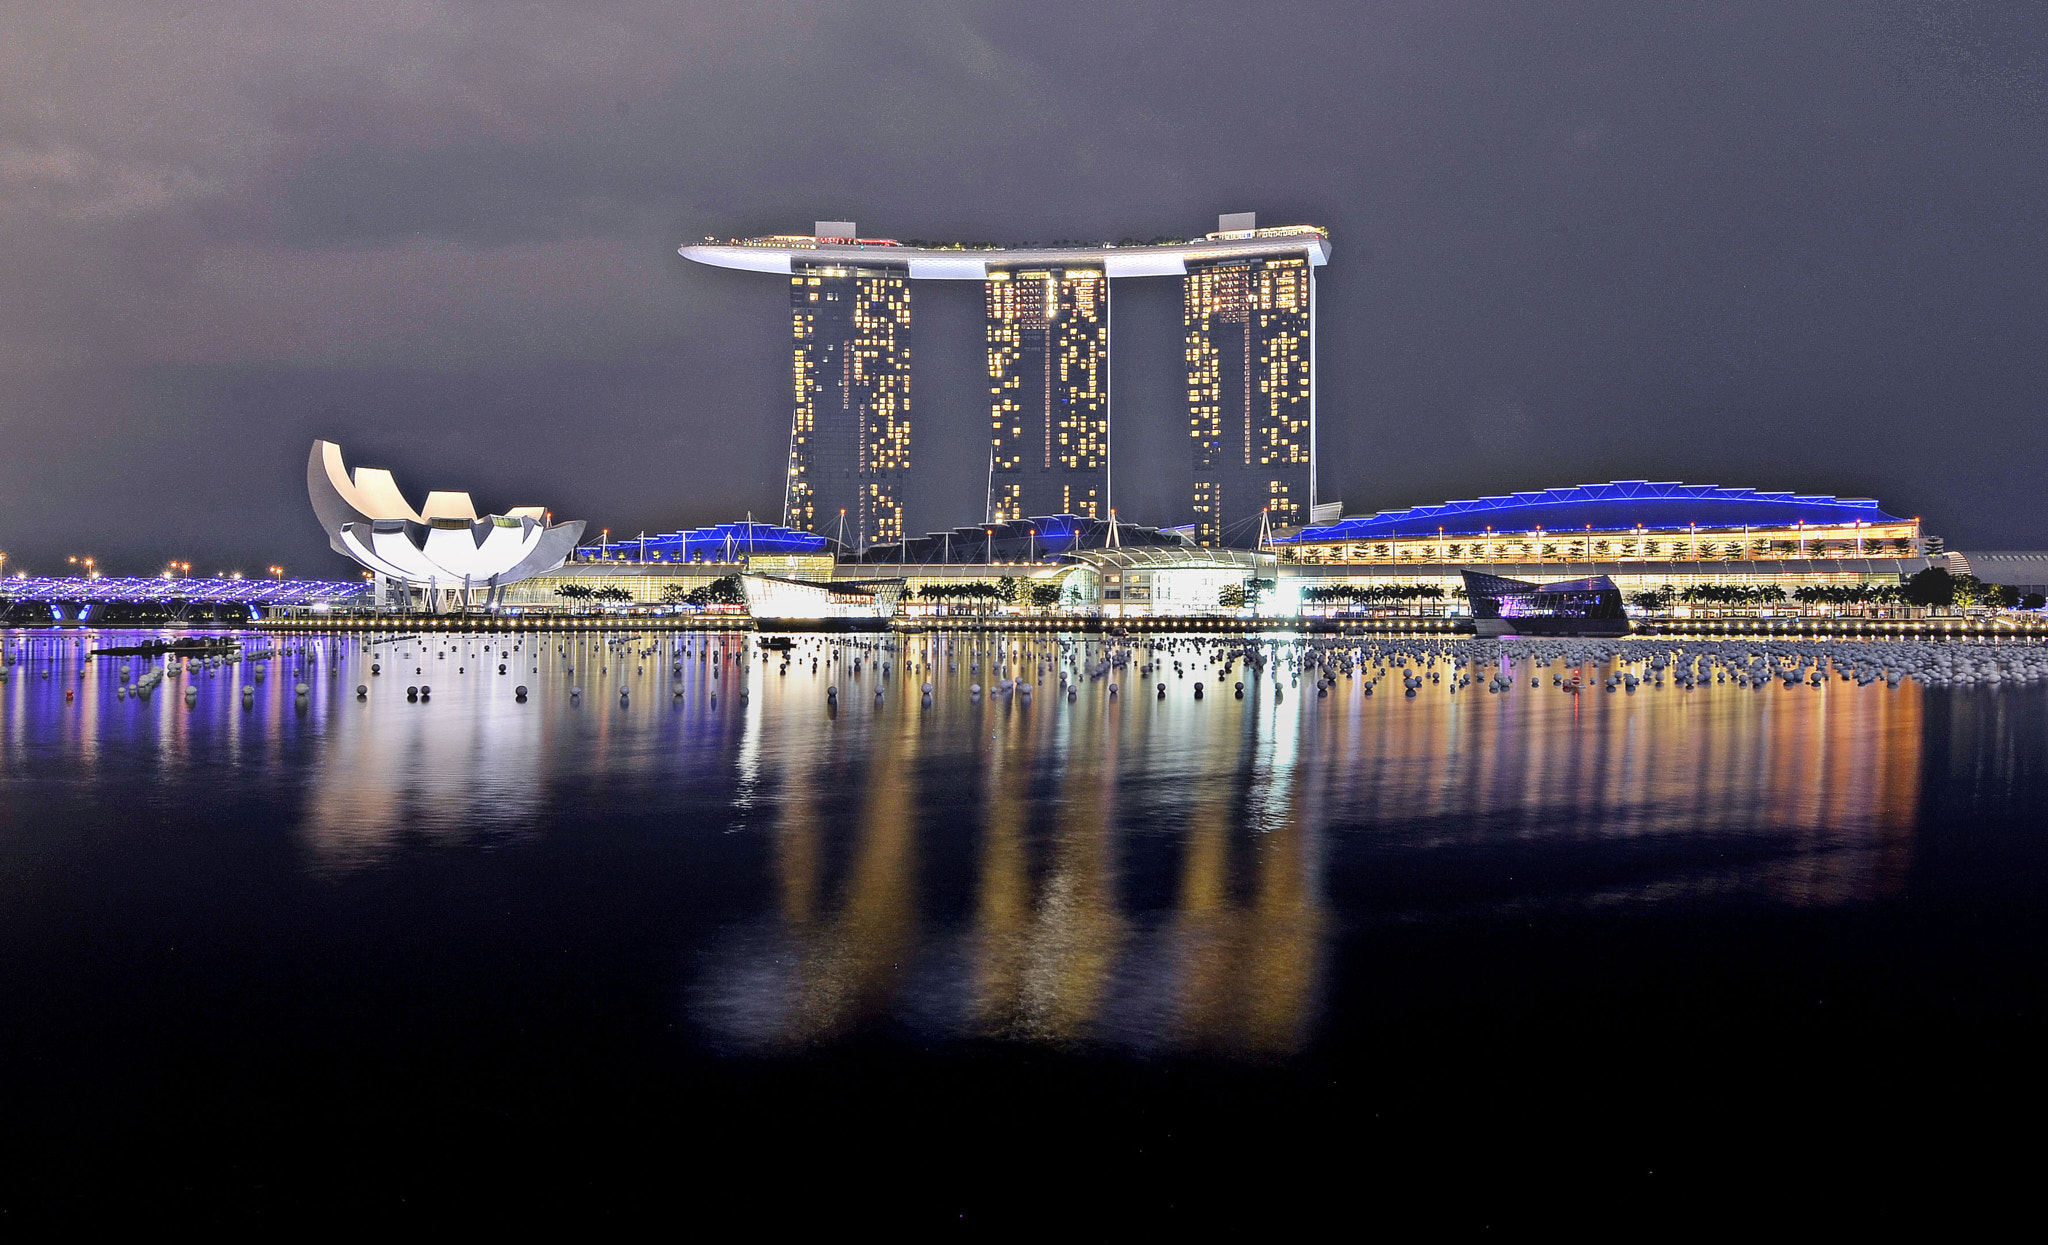 Photograph Marina Bay Sands Singapore#2 by S e i n on 500px